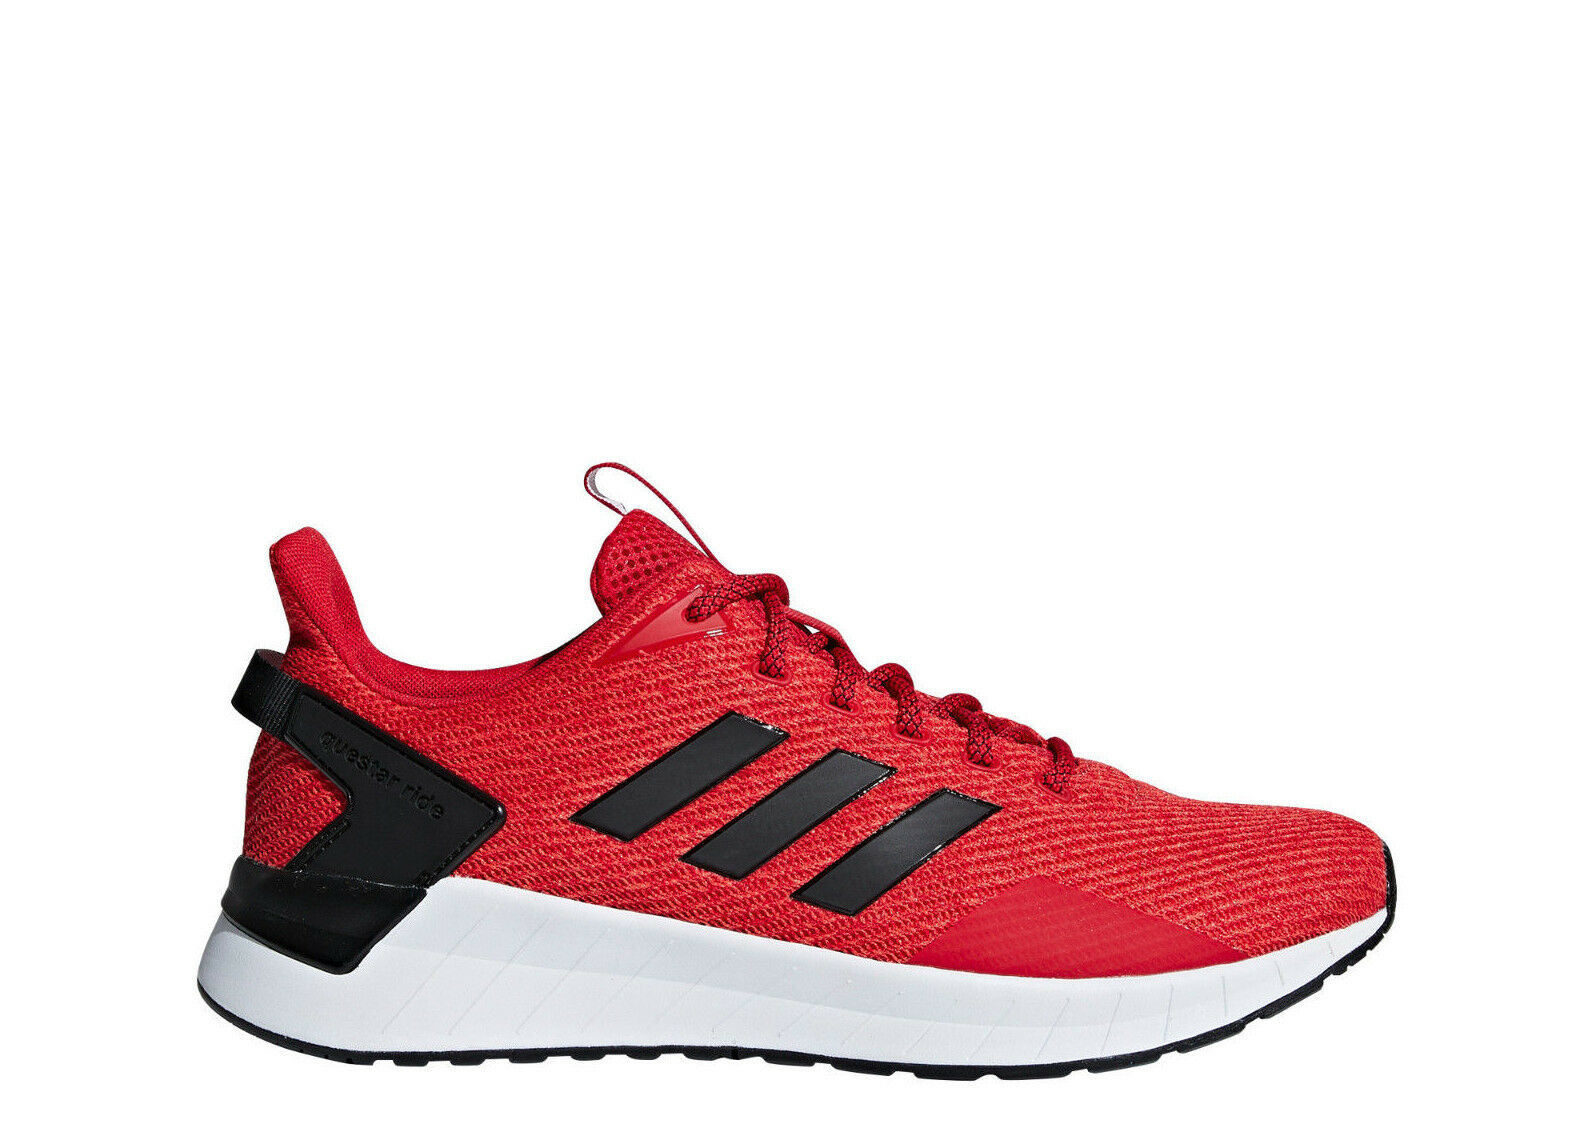 Adidas Men shoes Questar Ride Running Training Fitness Fashion B44808 Trainers